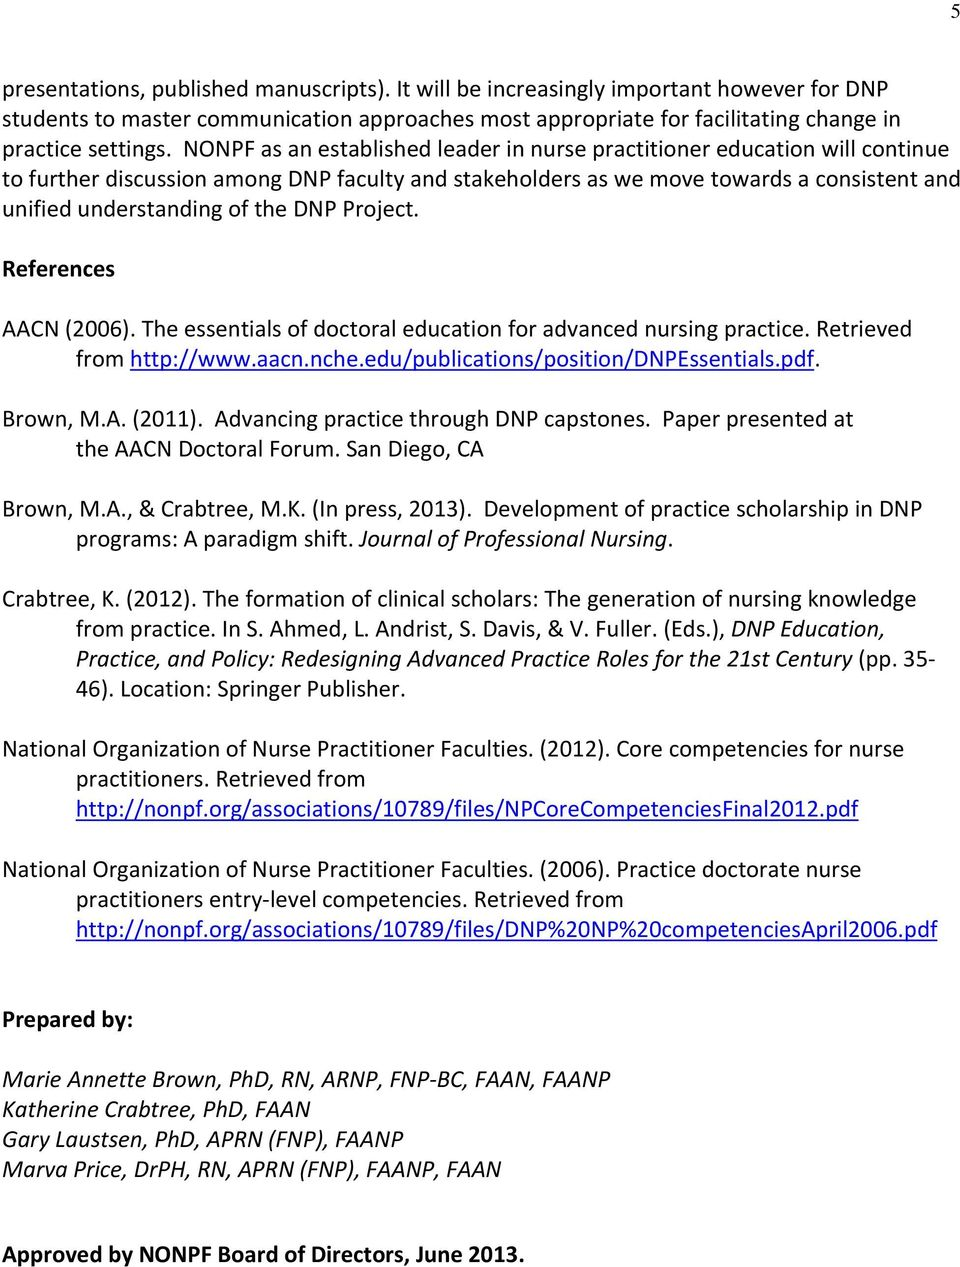 DNP Project. References AACN (2006). The essentials of doctoral education for advanced nursing practice. Retrieved from http://www.aacn.nche.edu/publications/position/dnpessentials.pdf. Brown, M.A. (2011).